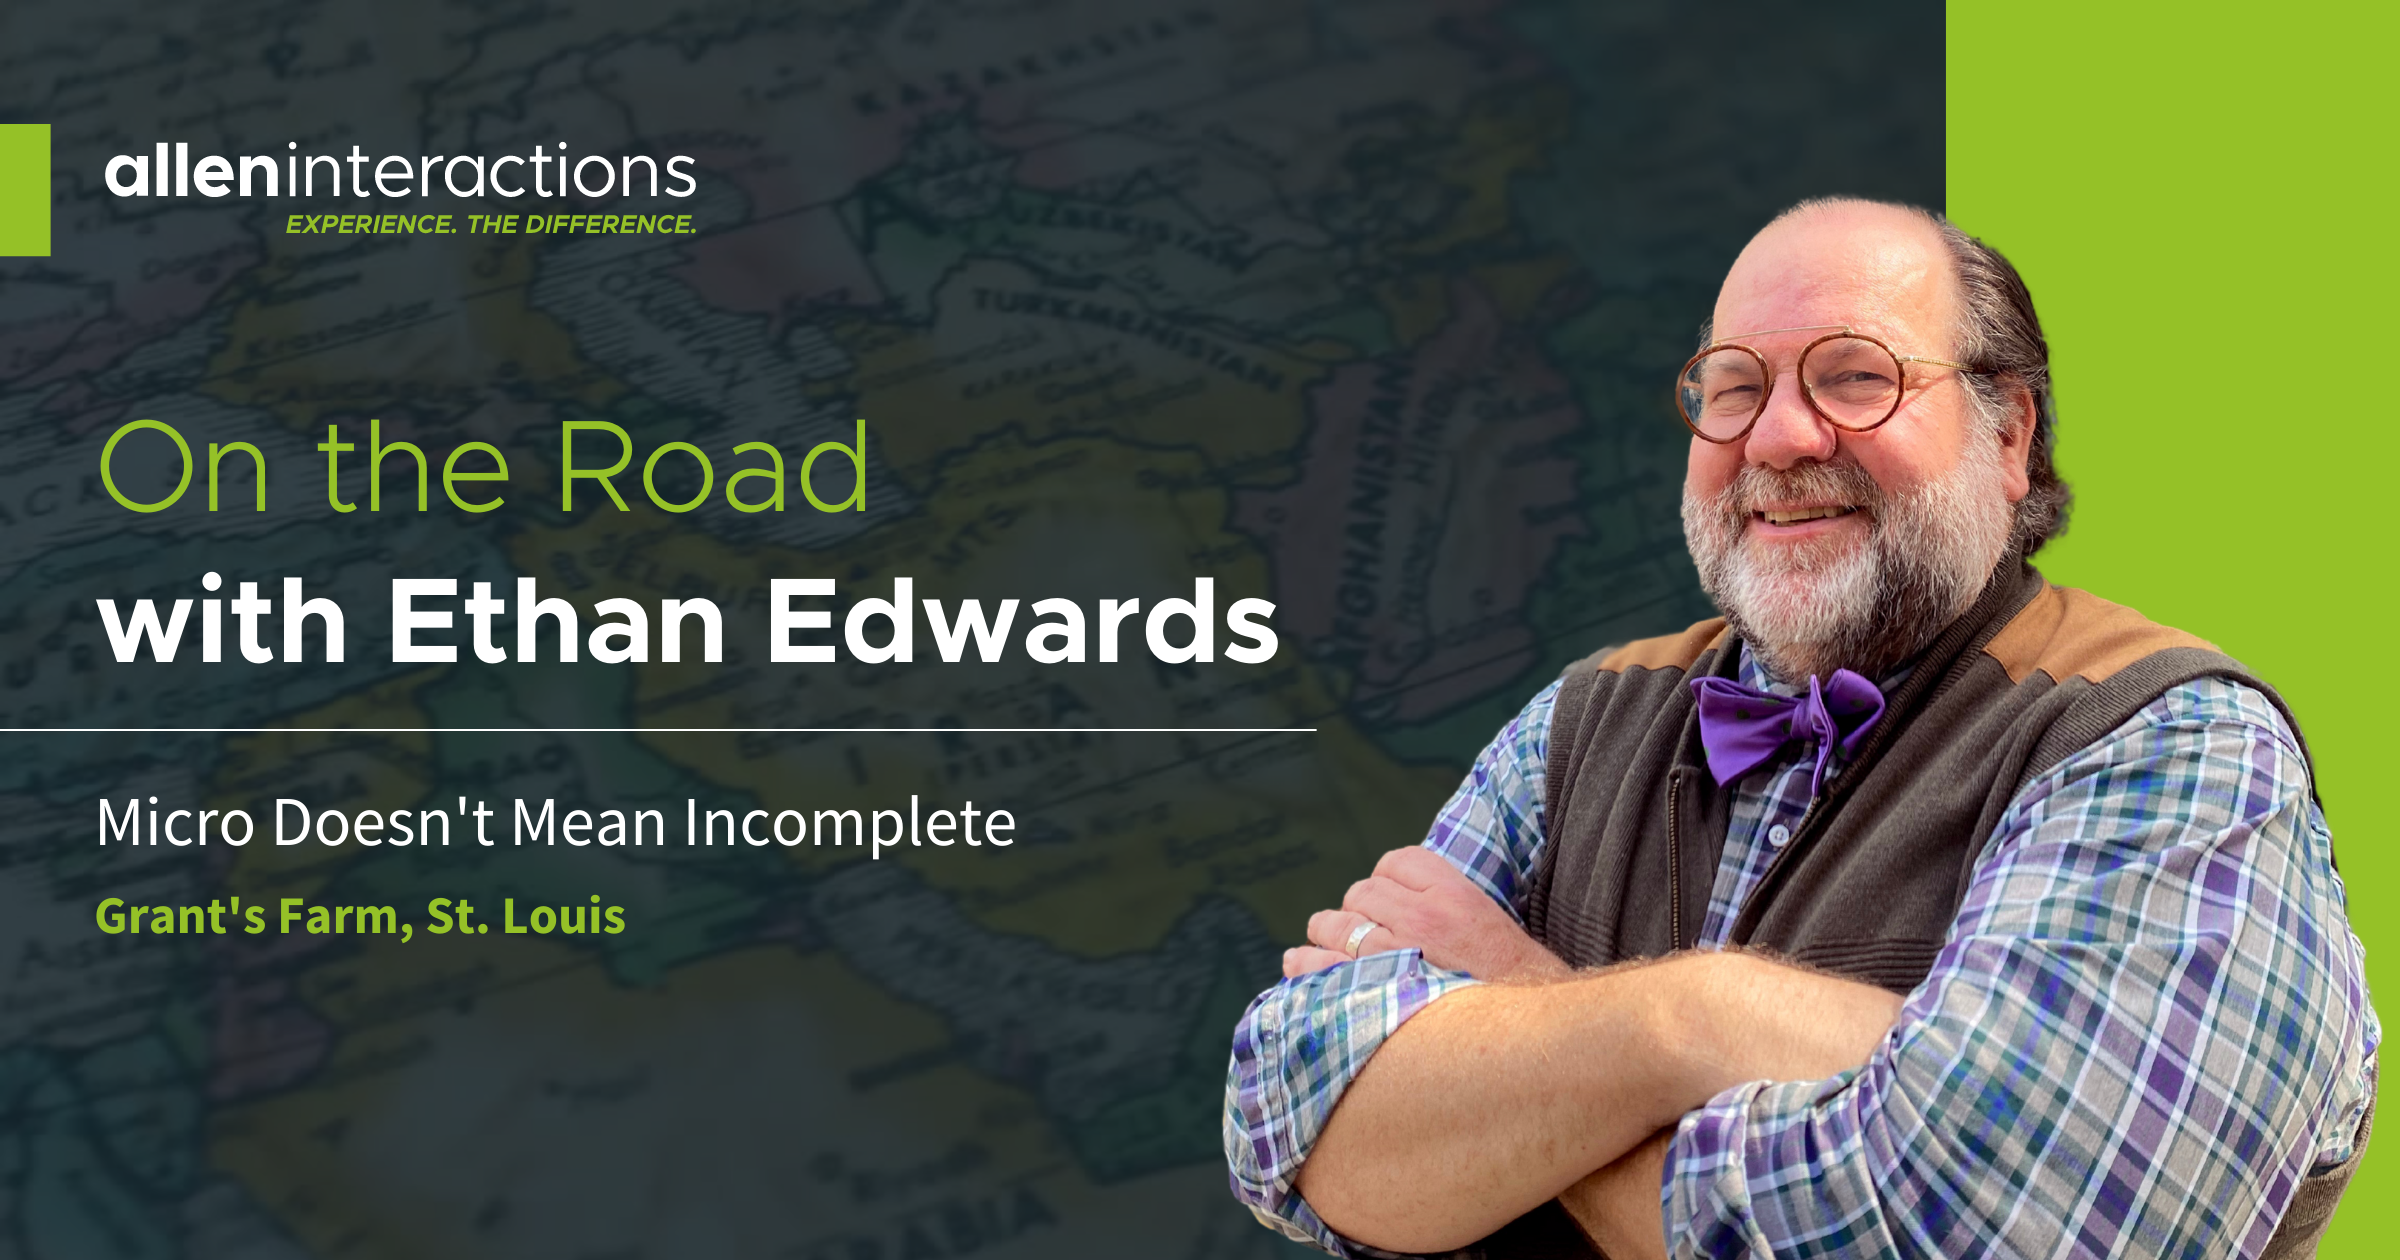 On the Road with Ethan Edwards: Micro Doesn't Mean Incomplete